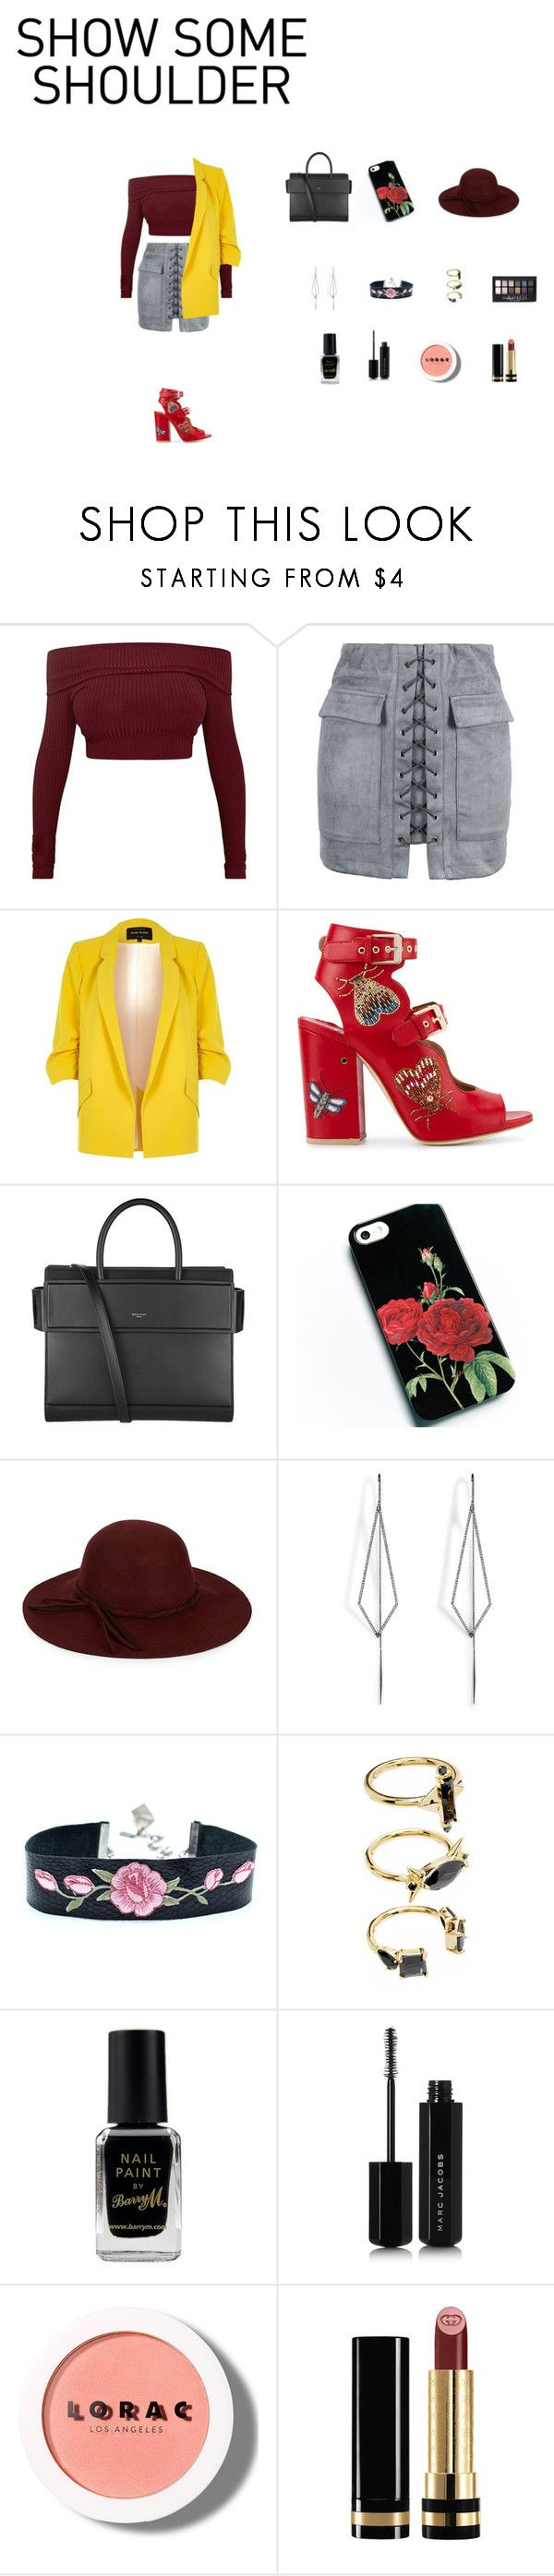 """""""mimi"""" by yesica-rey on Polyvore featuring moda, River Island, Laurence Dacade, Givenchy, COLLECTION 18, Diane Kordas, Noir Jewelry, Maybelline, Barry M y Marc Jacobs"""